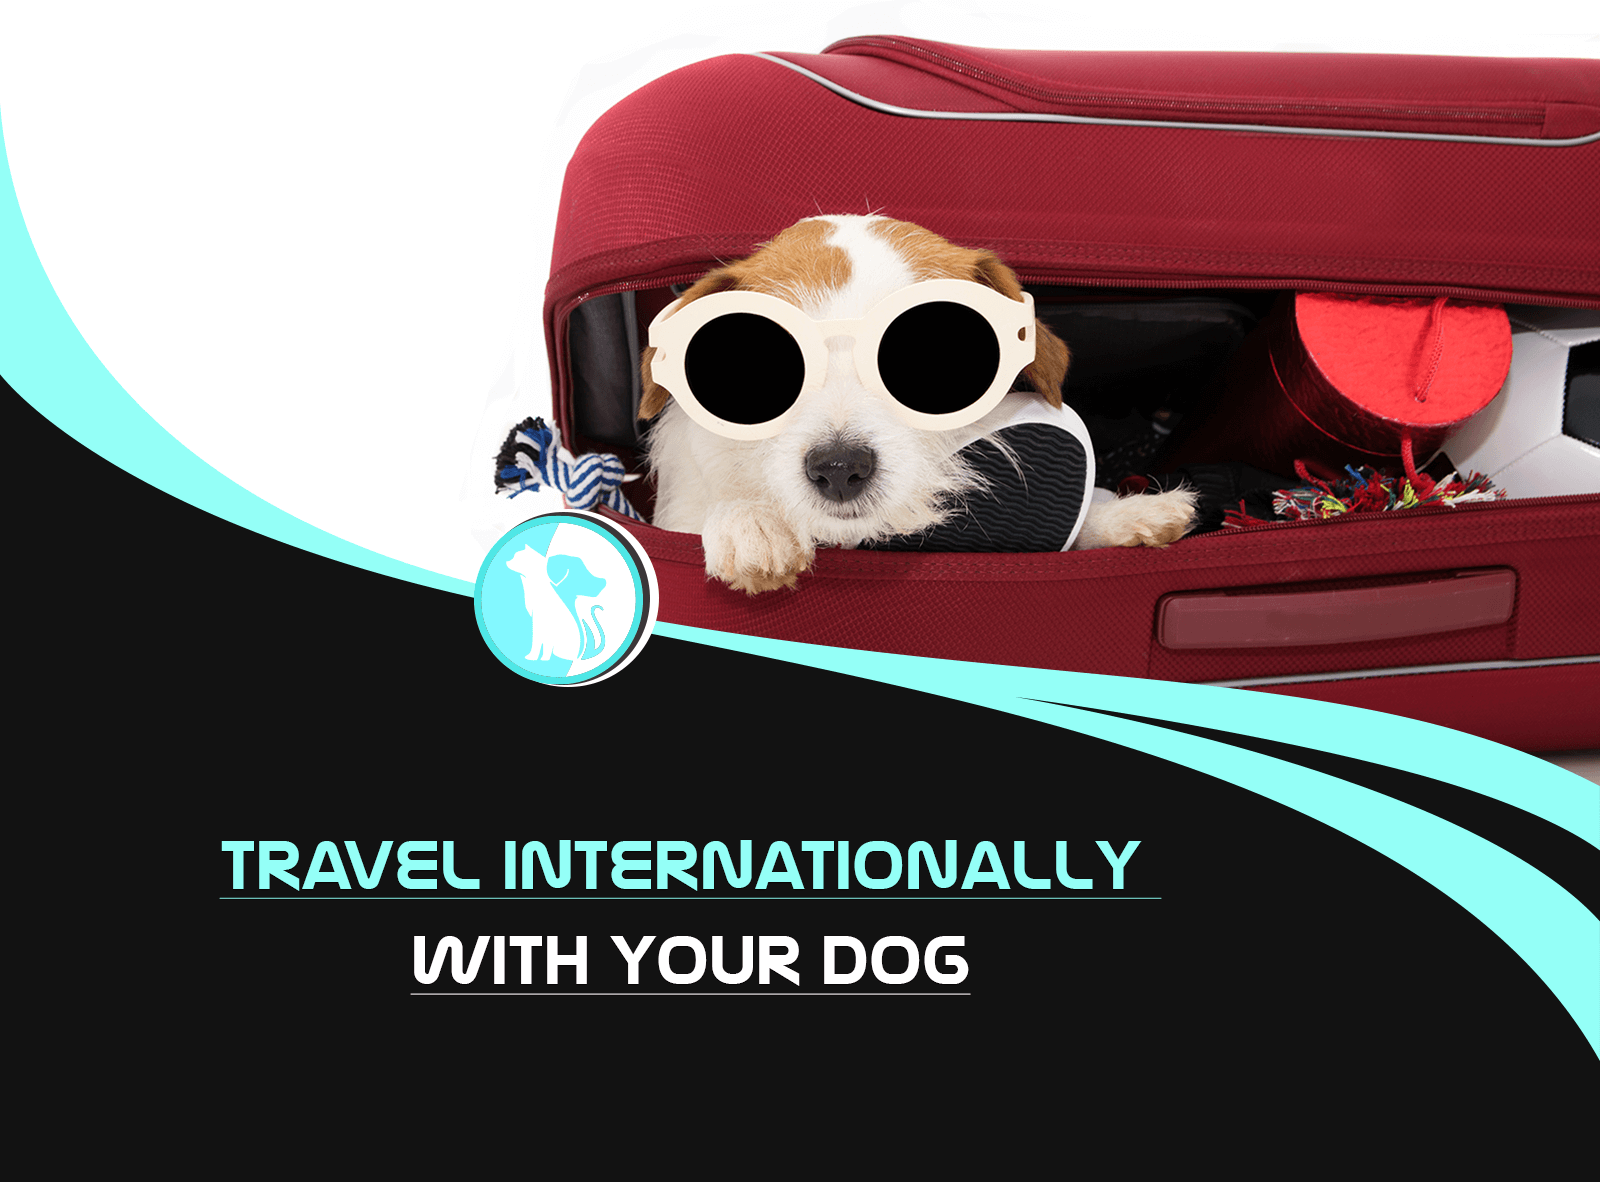 How to Travel Internationally with Your Dog